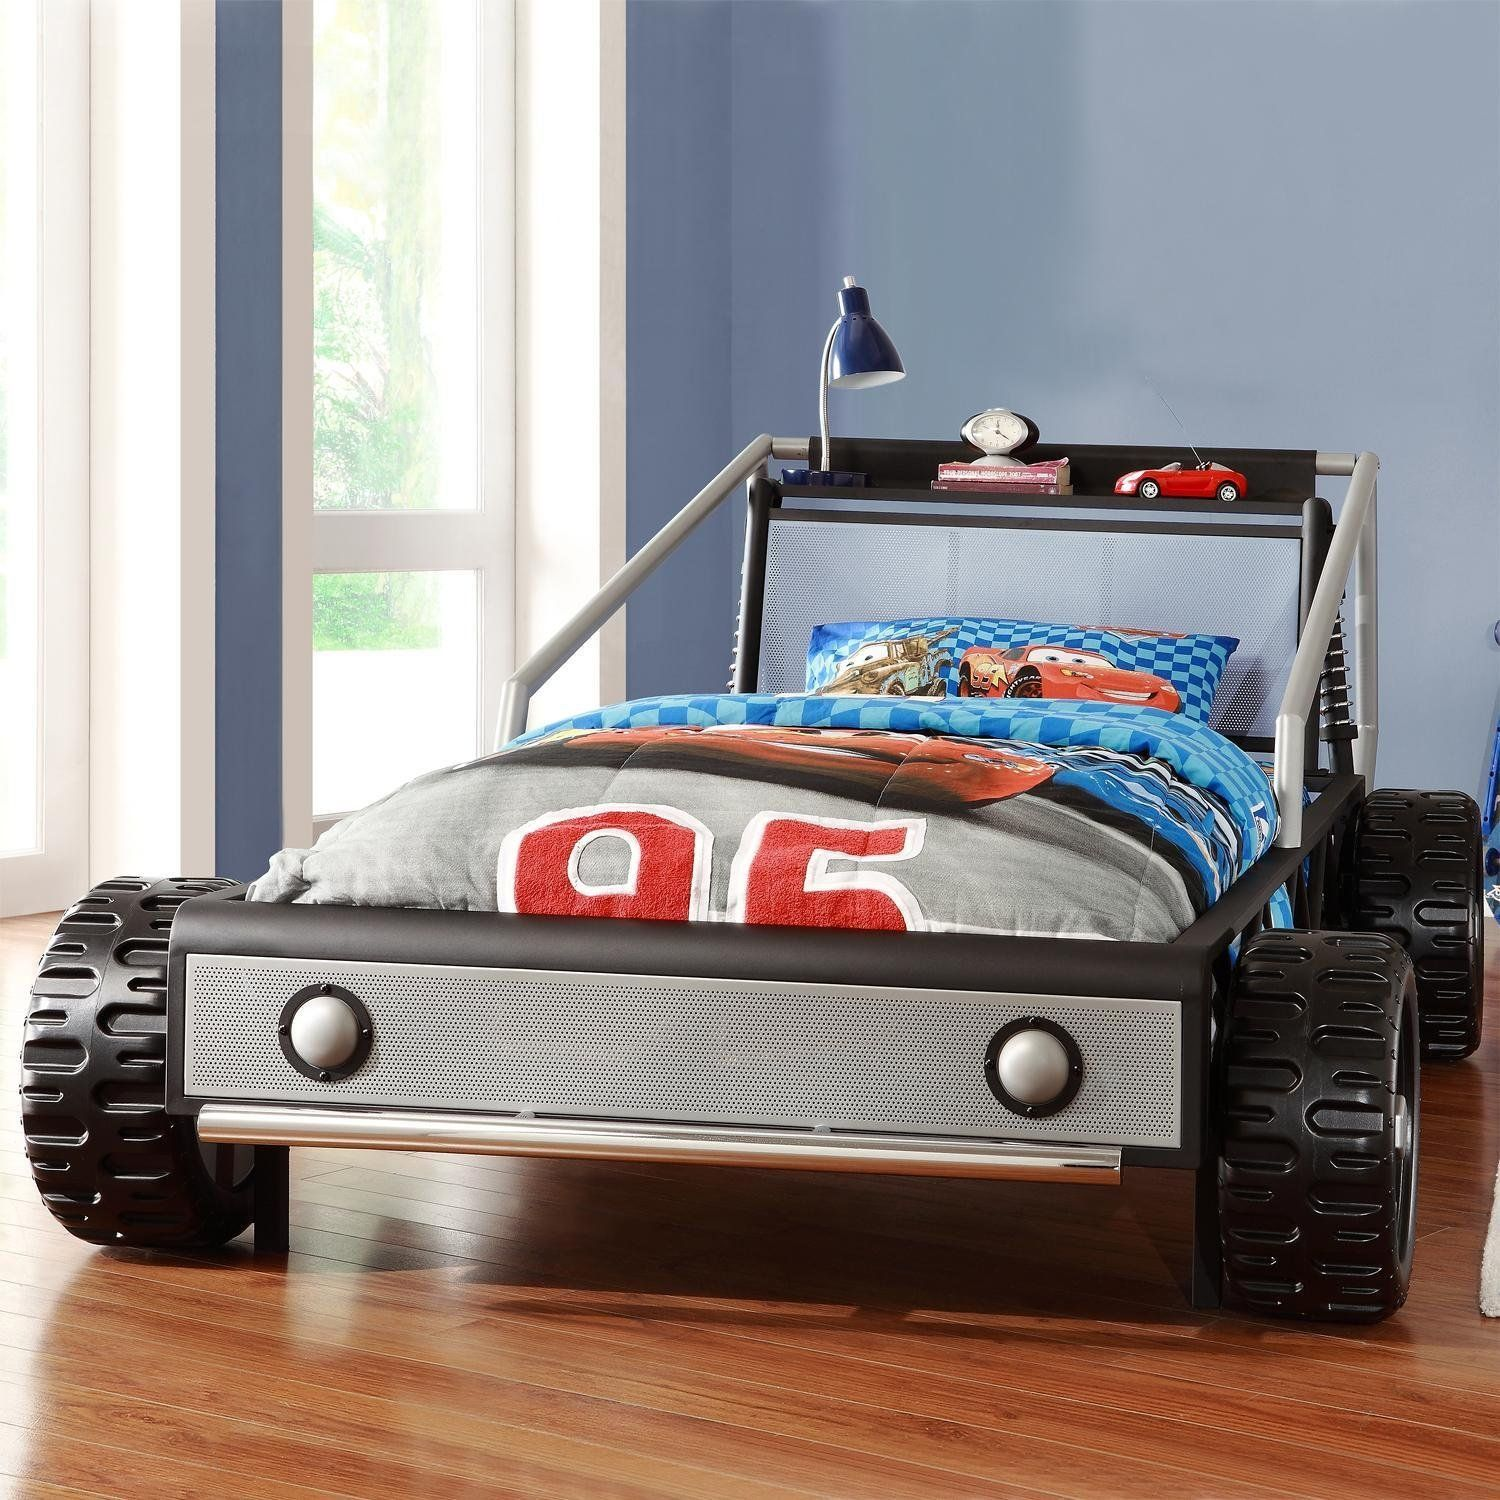 Silver Heavy Metal Twin Size Race Car Bed  Vroom